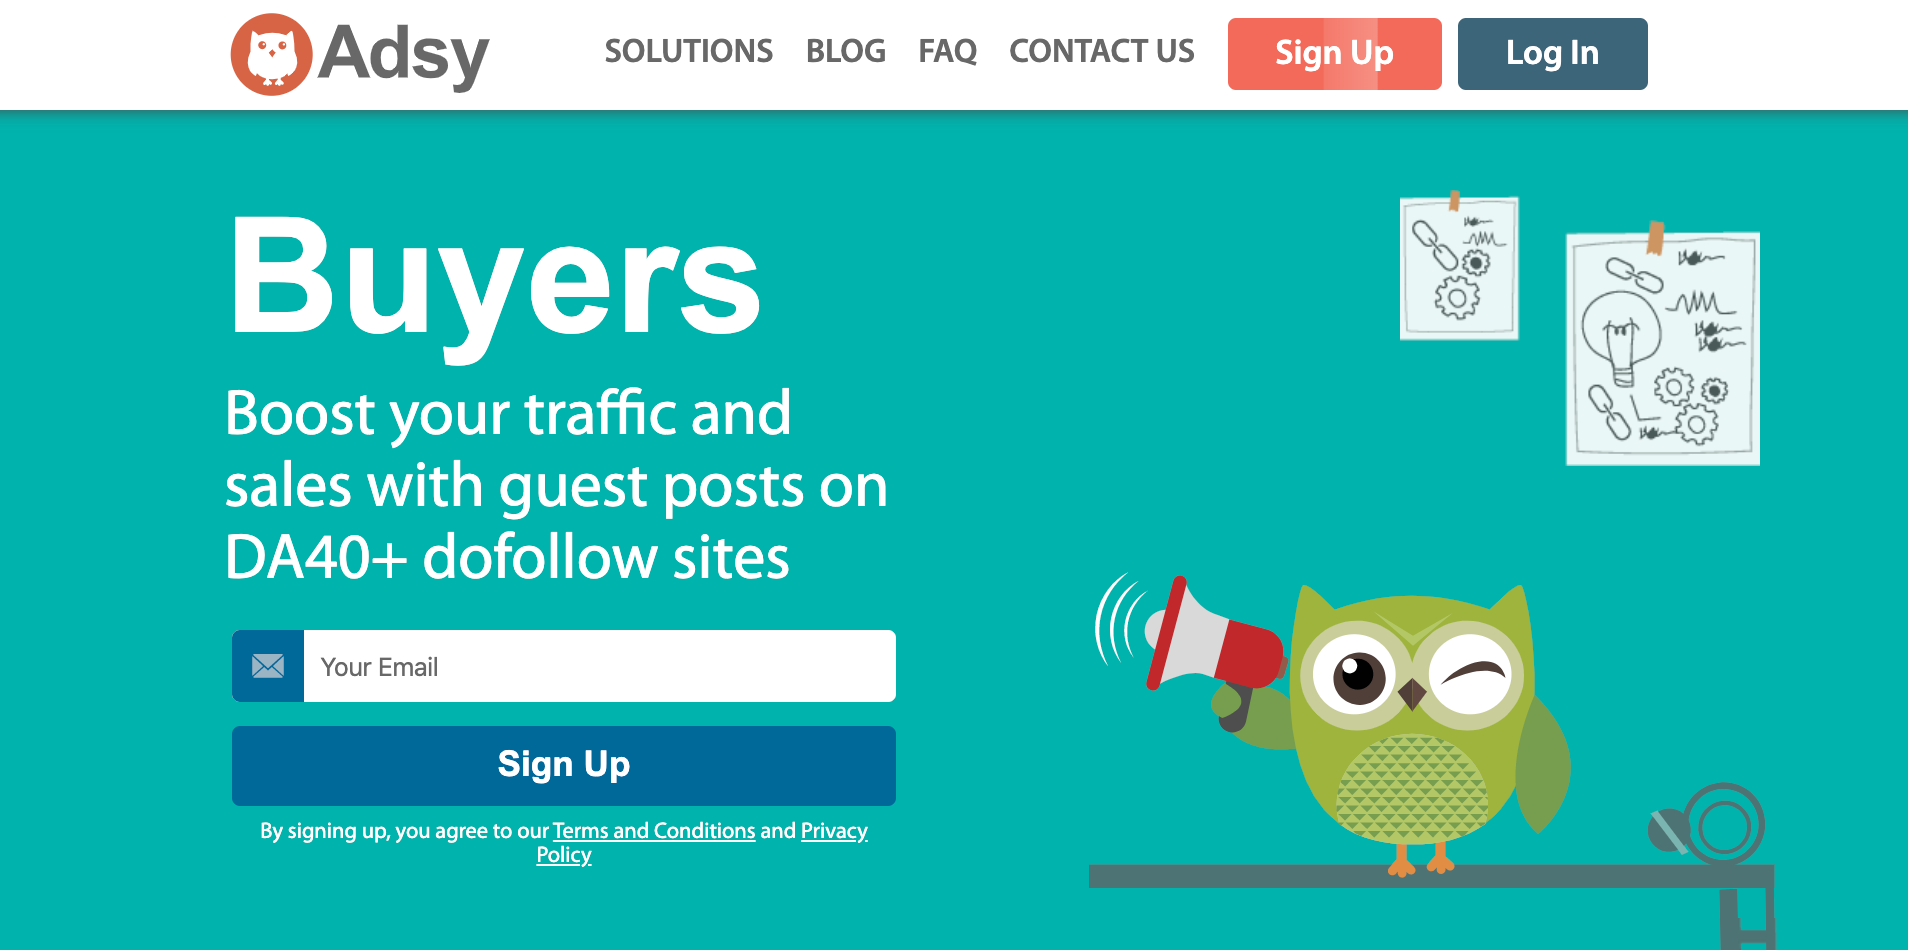 Adsy For Bloggers- Guest Post Service